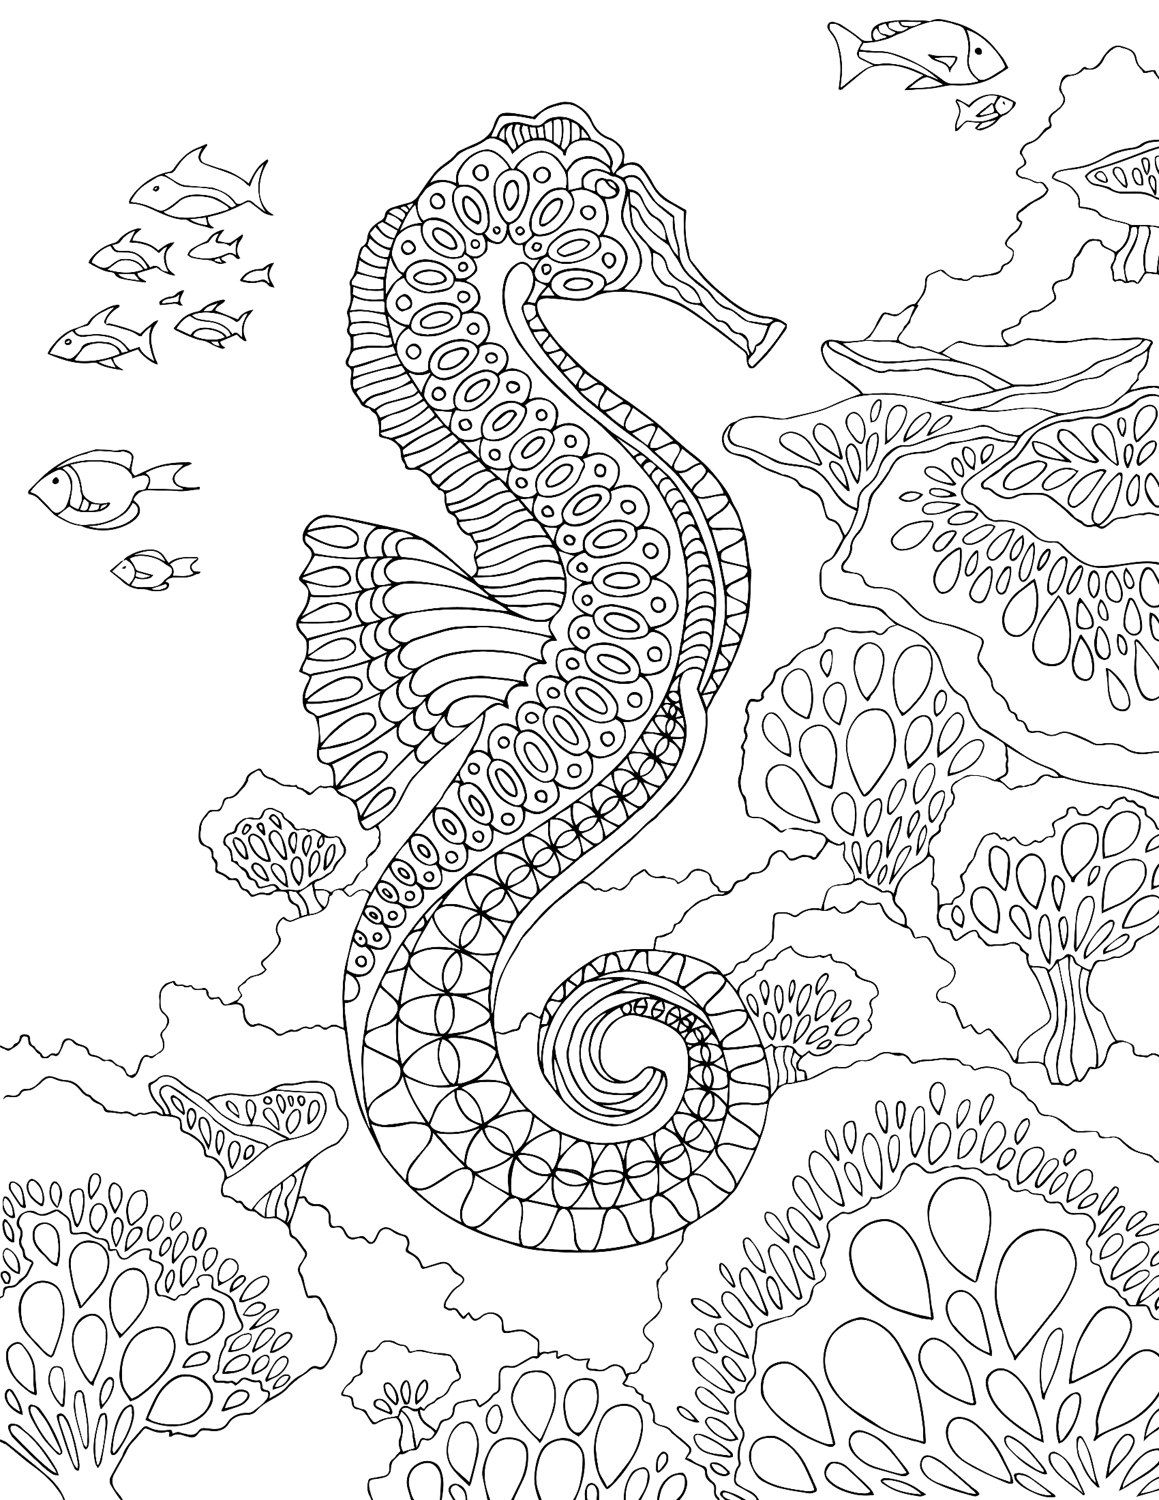 seahorse coloring pages to print free printable seahorse coloring pages for kids seahorse print coloring pages to